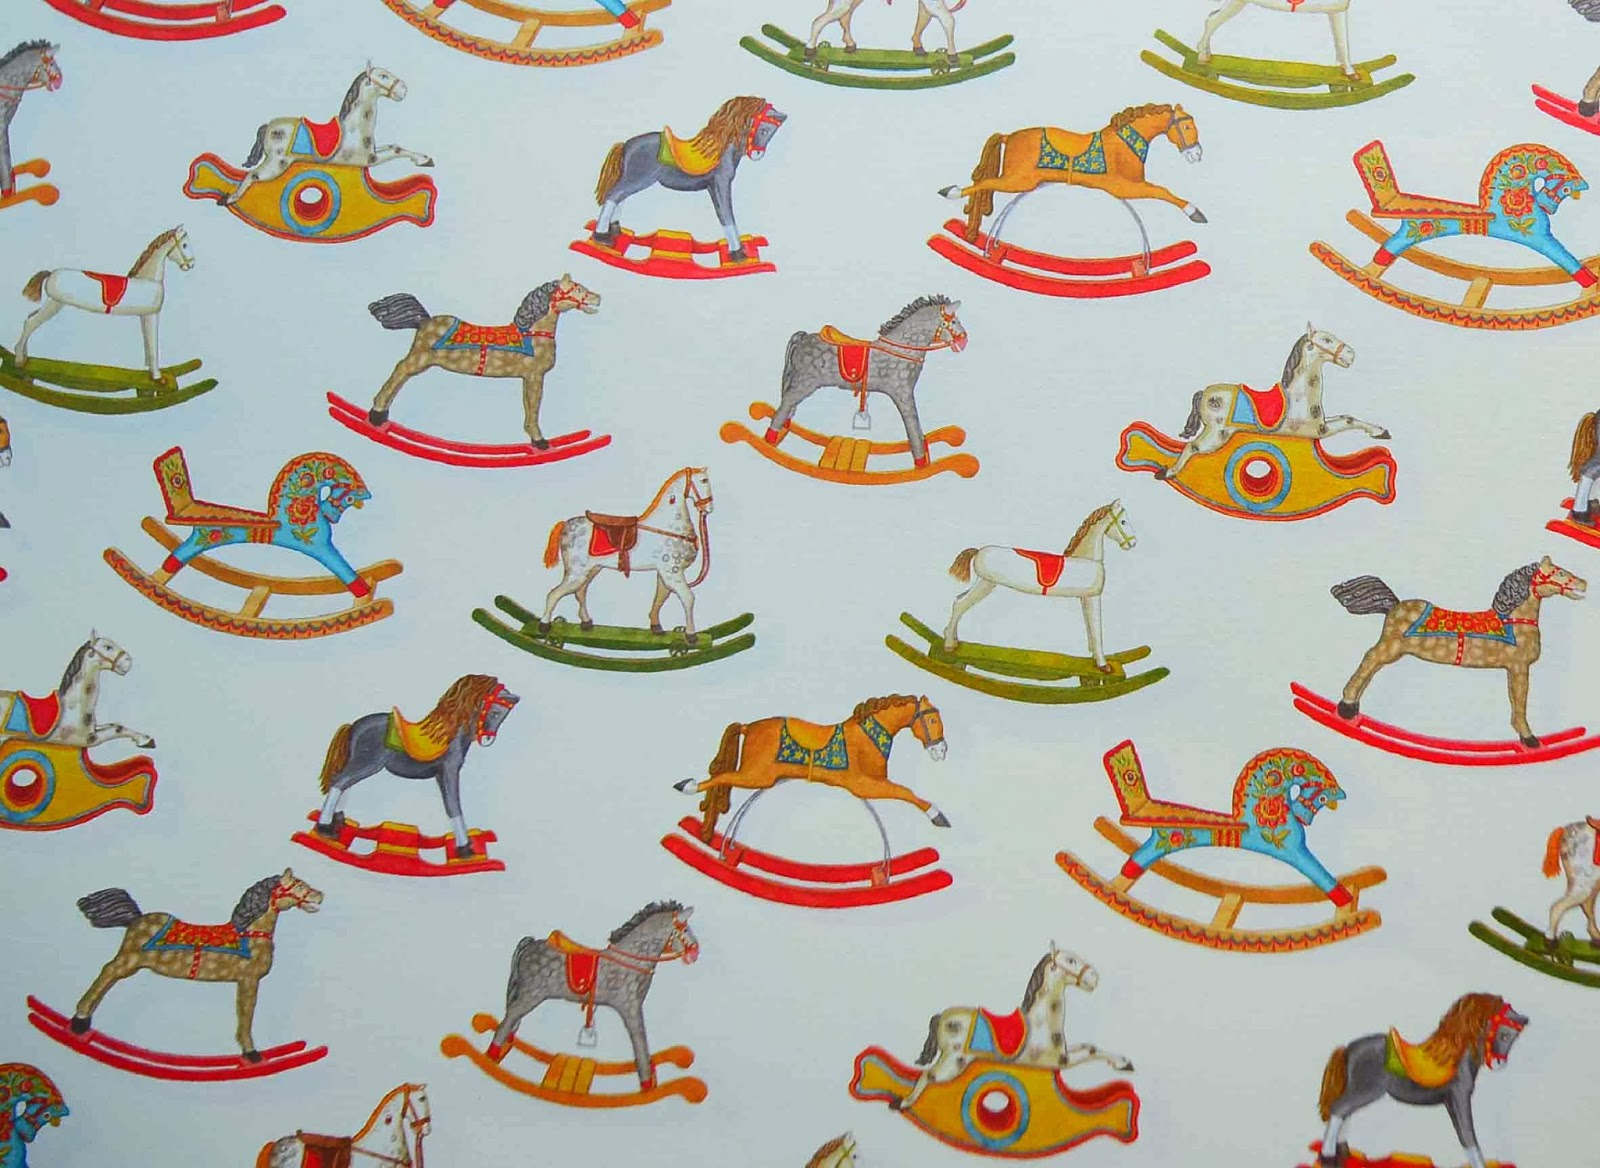 SUITBOOK, PAPEL, INFANTIL, BALANCIN, CABALLITOS, CARTE, PAPIER, CHILDREN, ROCKING HORSE